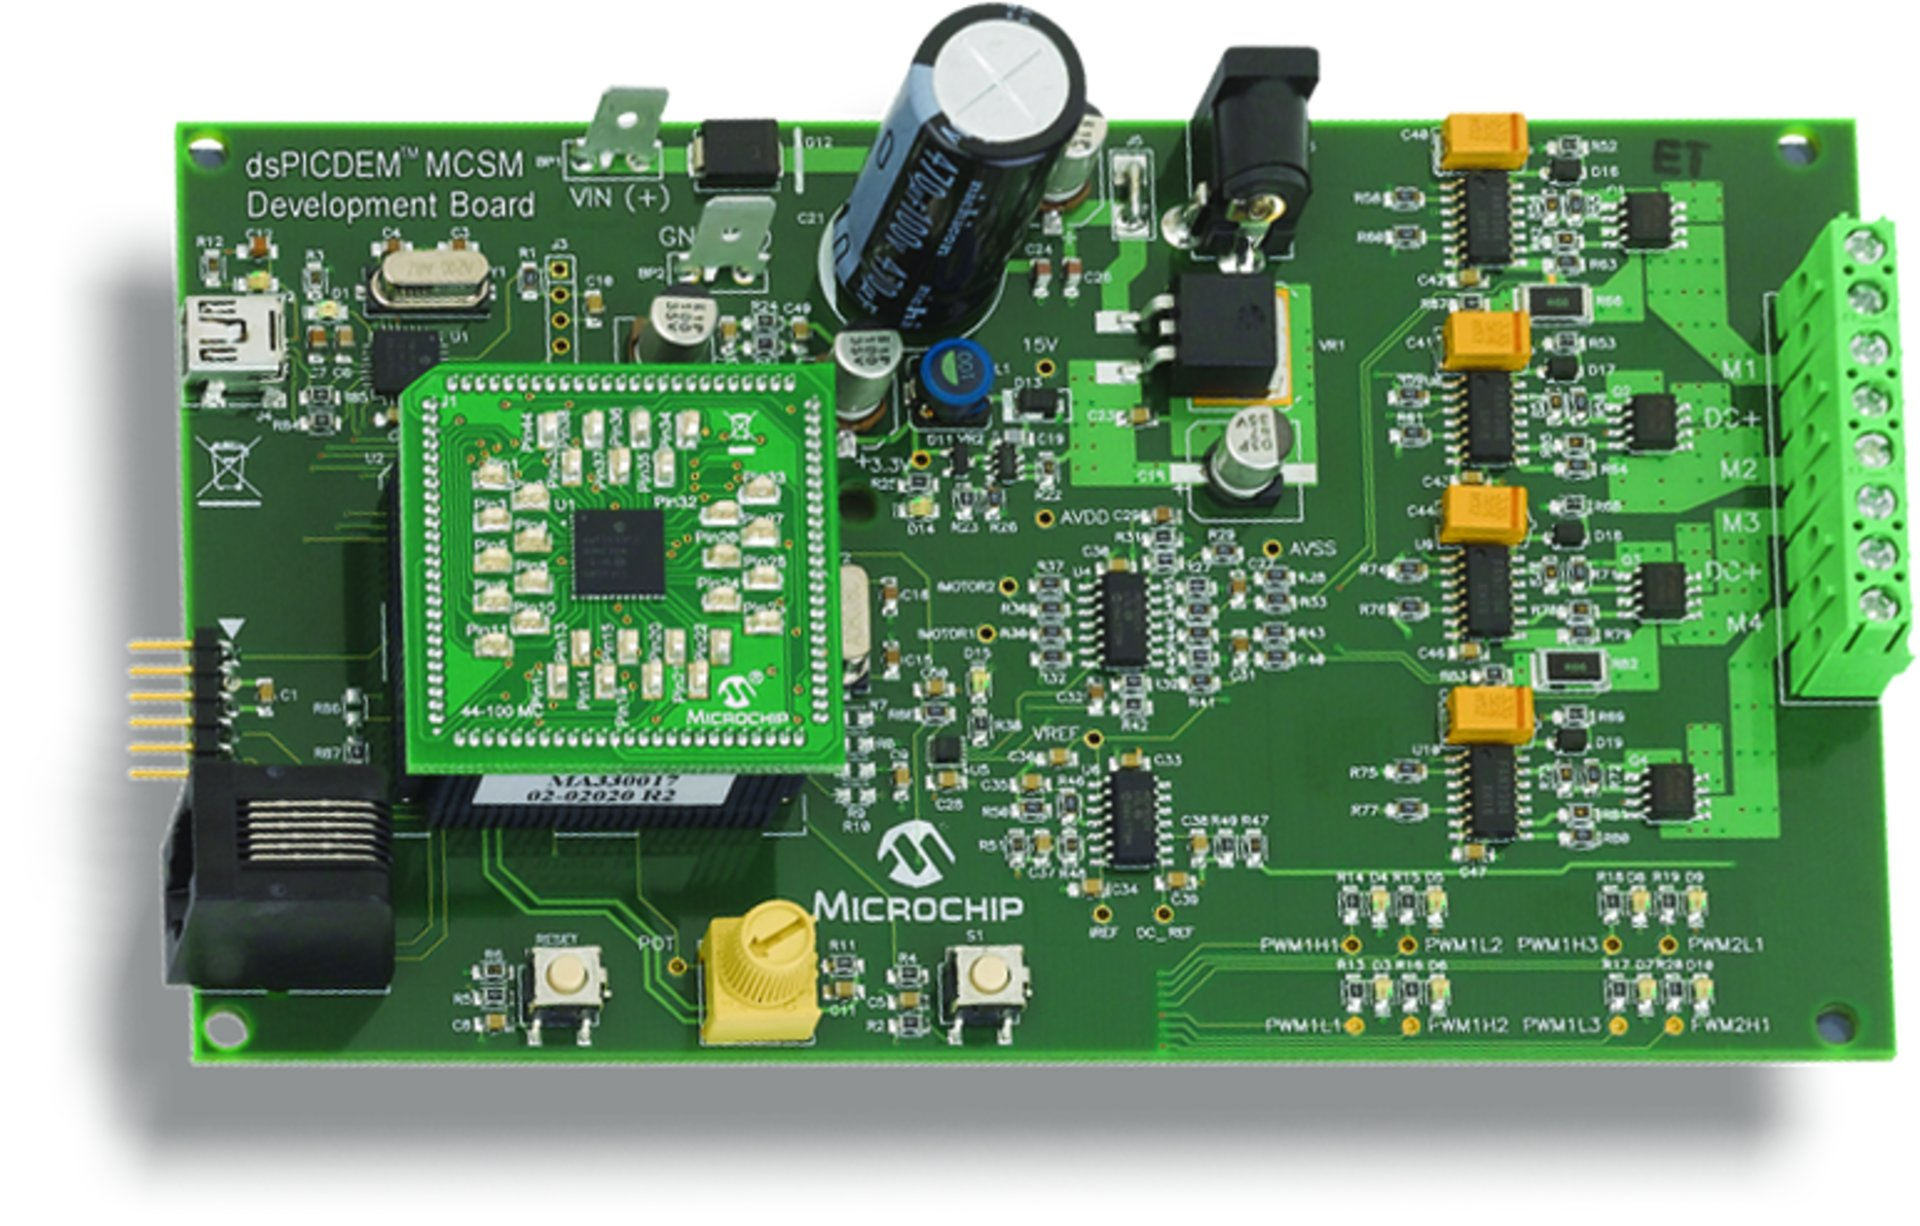 hight resolution of the microchip dspicdem mcsm development board is targeted to control both unipolar and bipolar stepper motors in open loop or closed loop current control